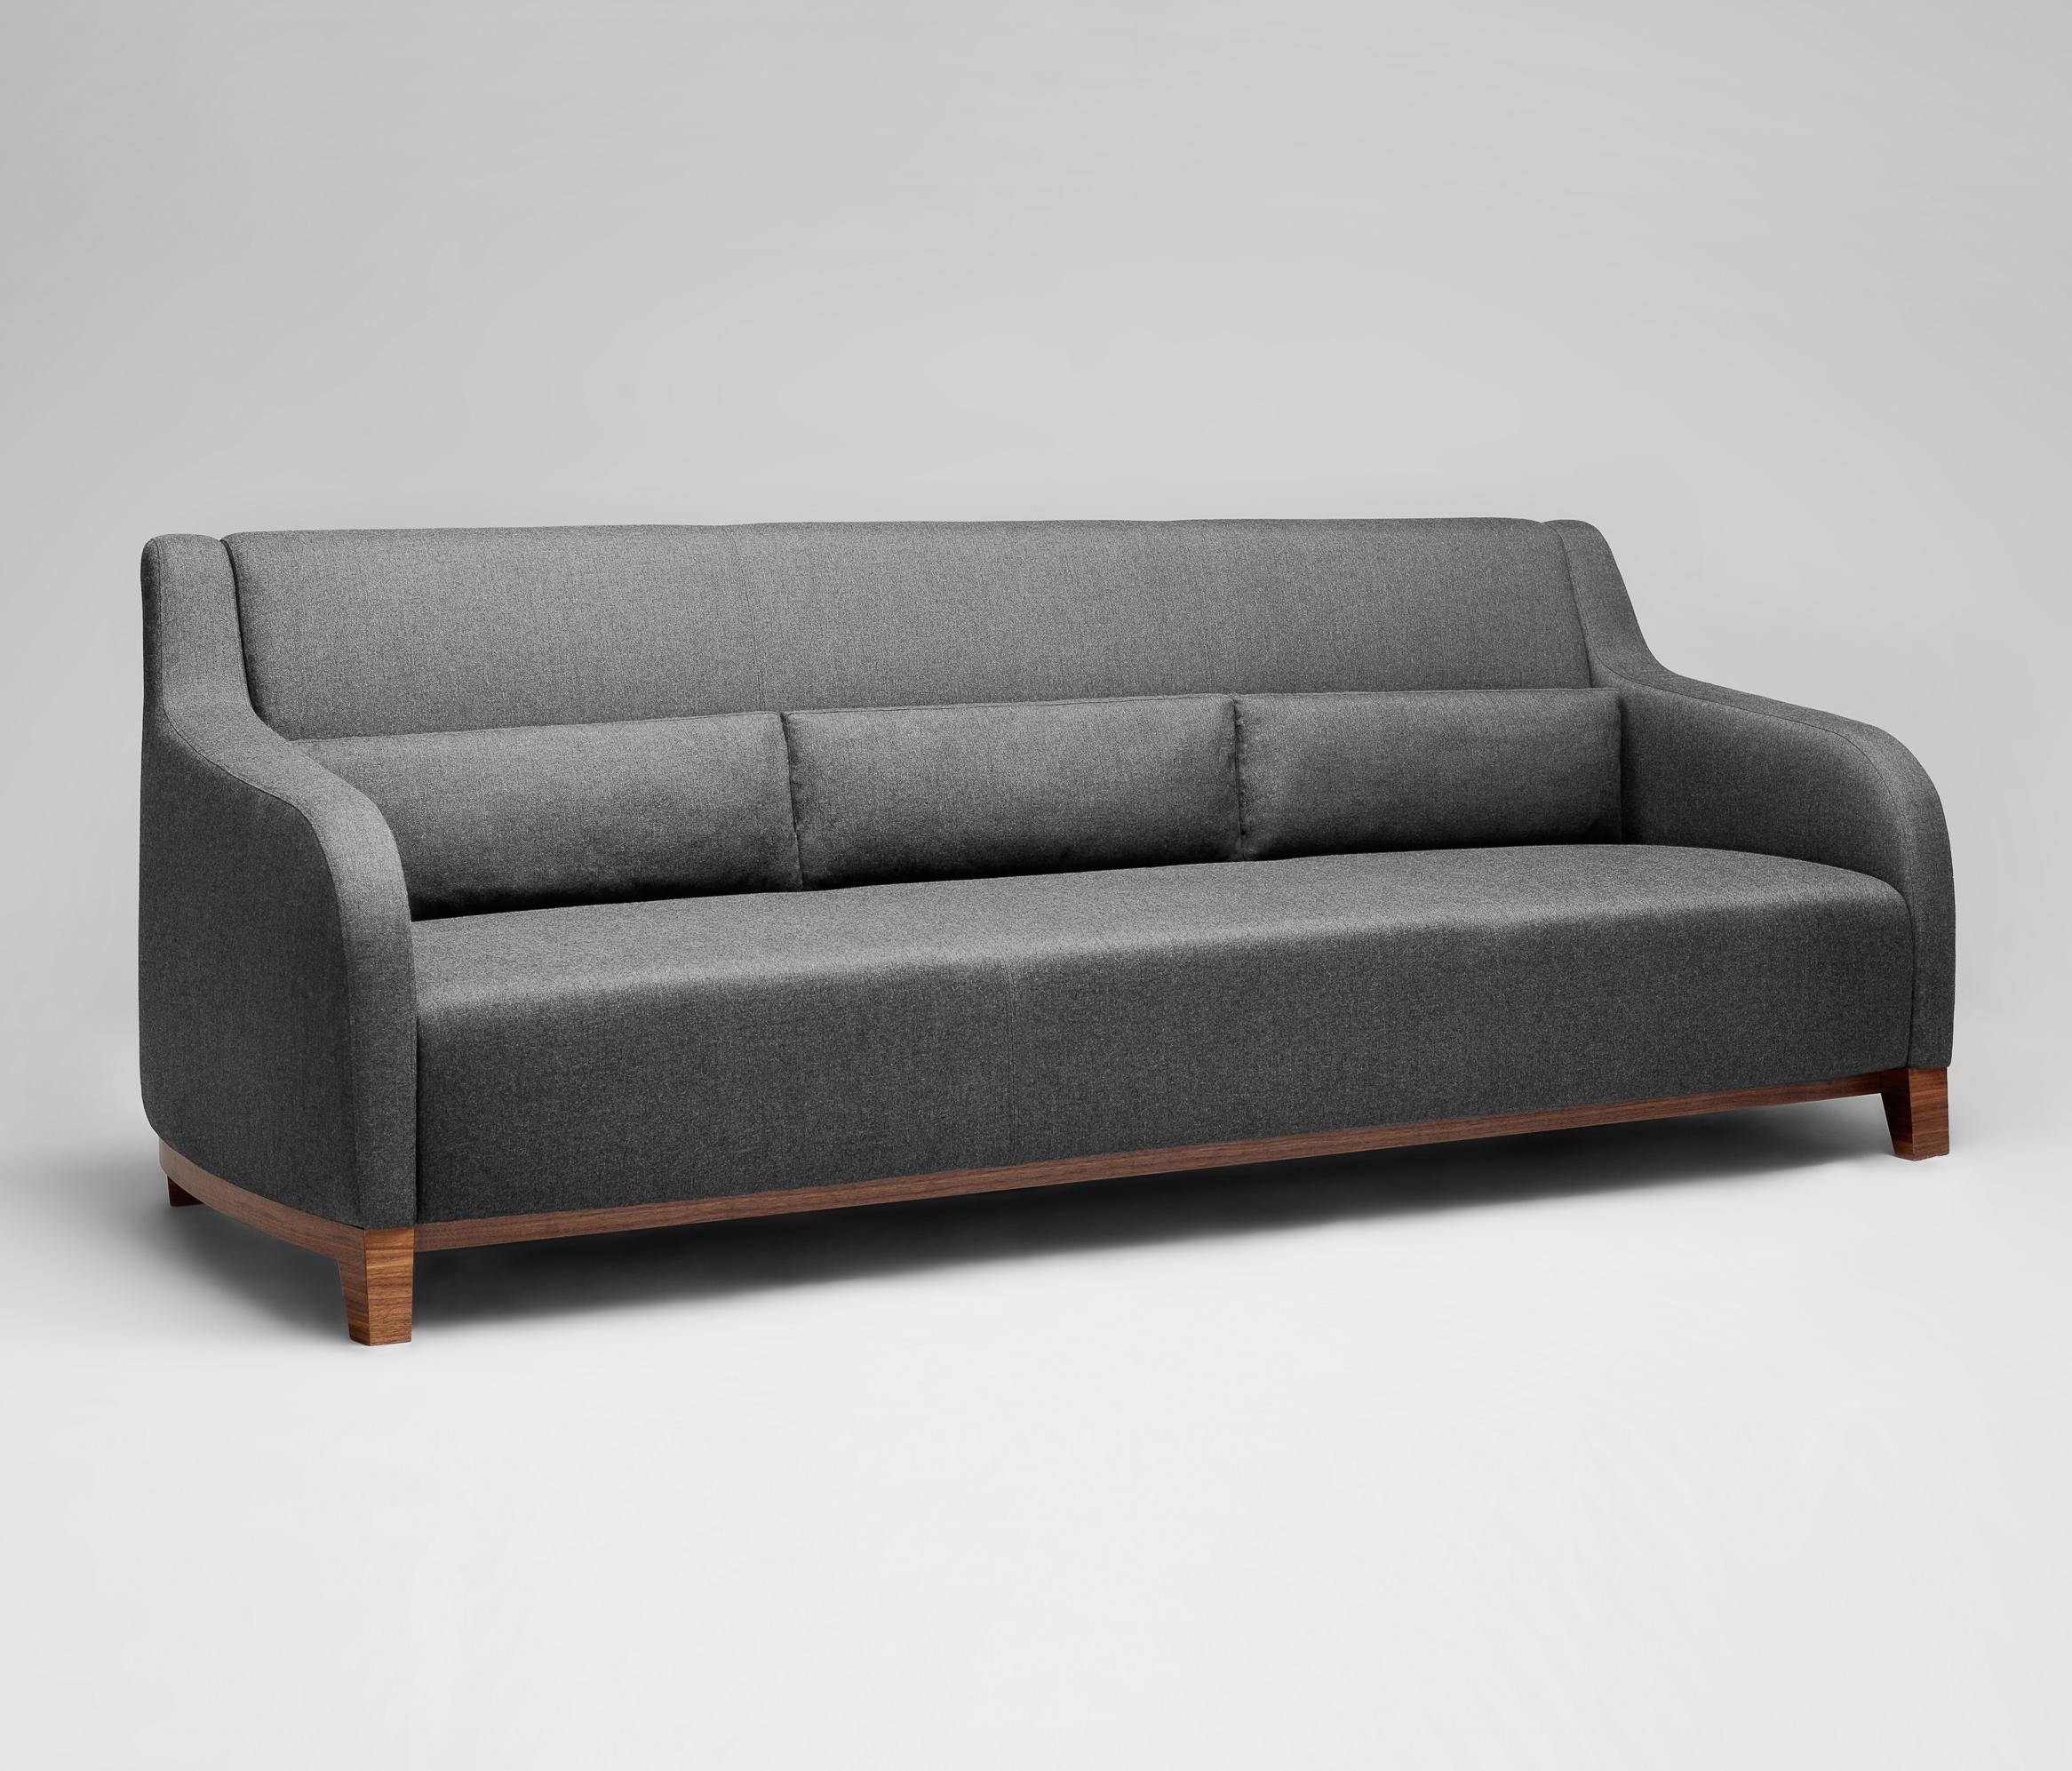 Collins Sofa - Lounge Sofas From Comforty | Architonic inside Collins Sofas (Image 4 of 15)